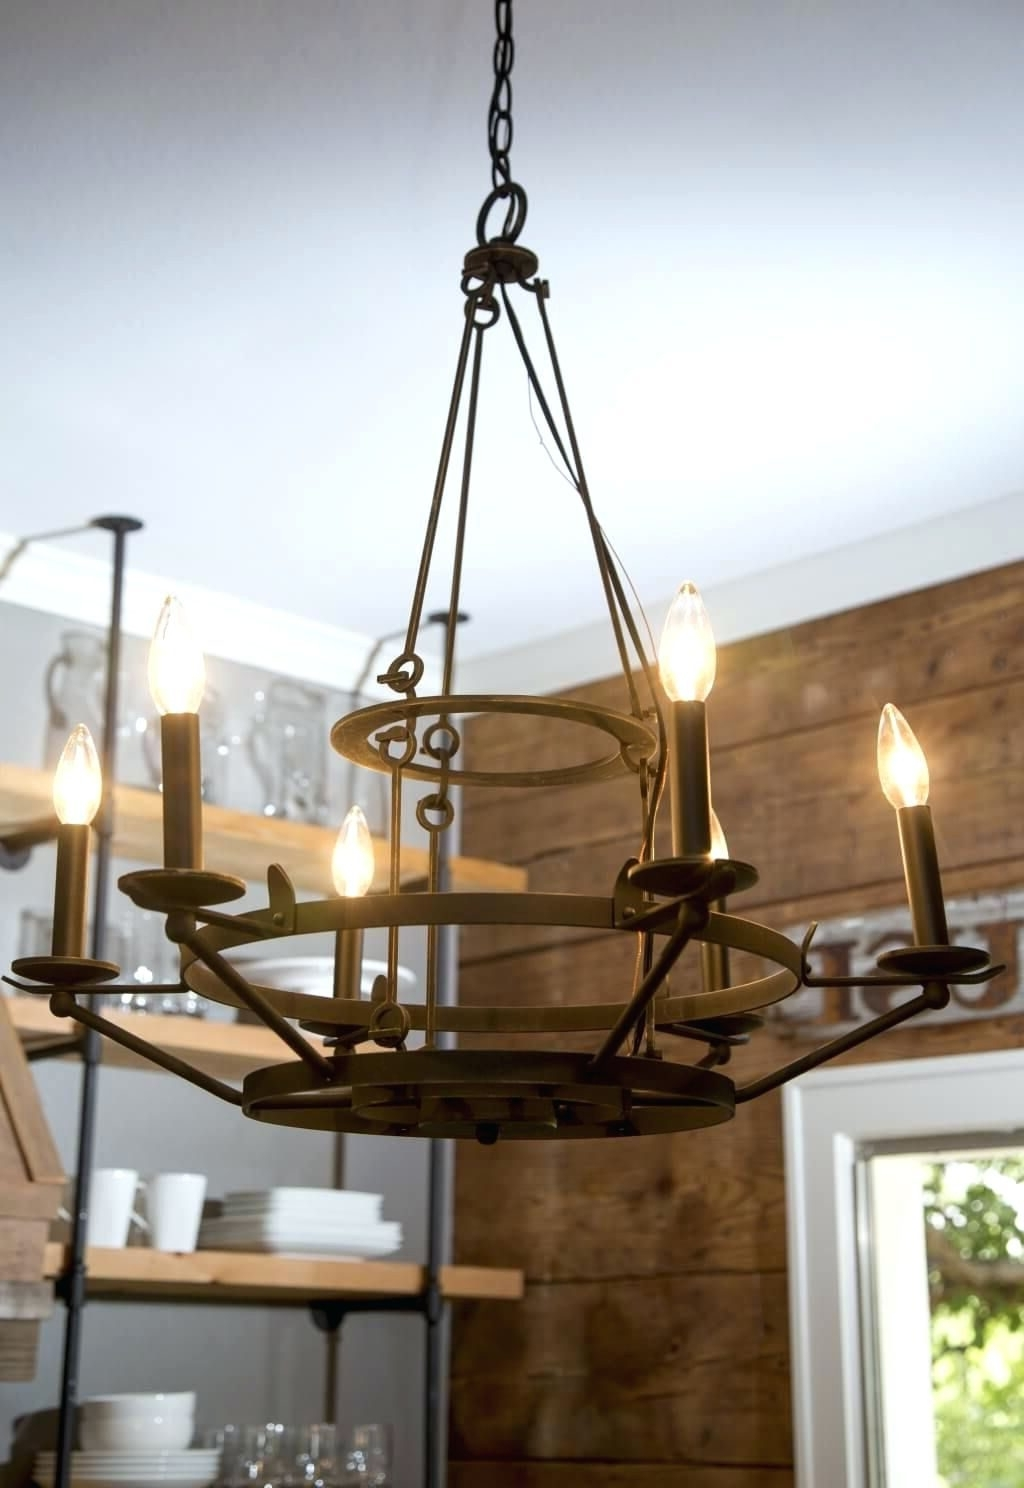 French Wooden Chandelier With Regard To Famous Chandeliers Design : Wonderful Diy Wood Chandelier Planter Outdoor (View 19 of 20)